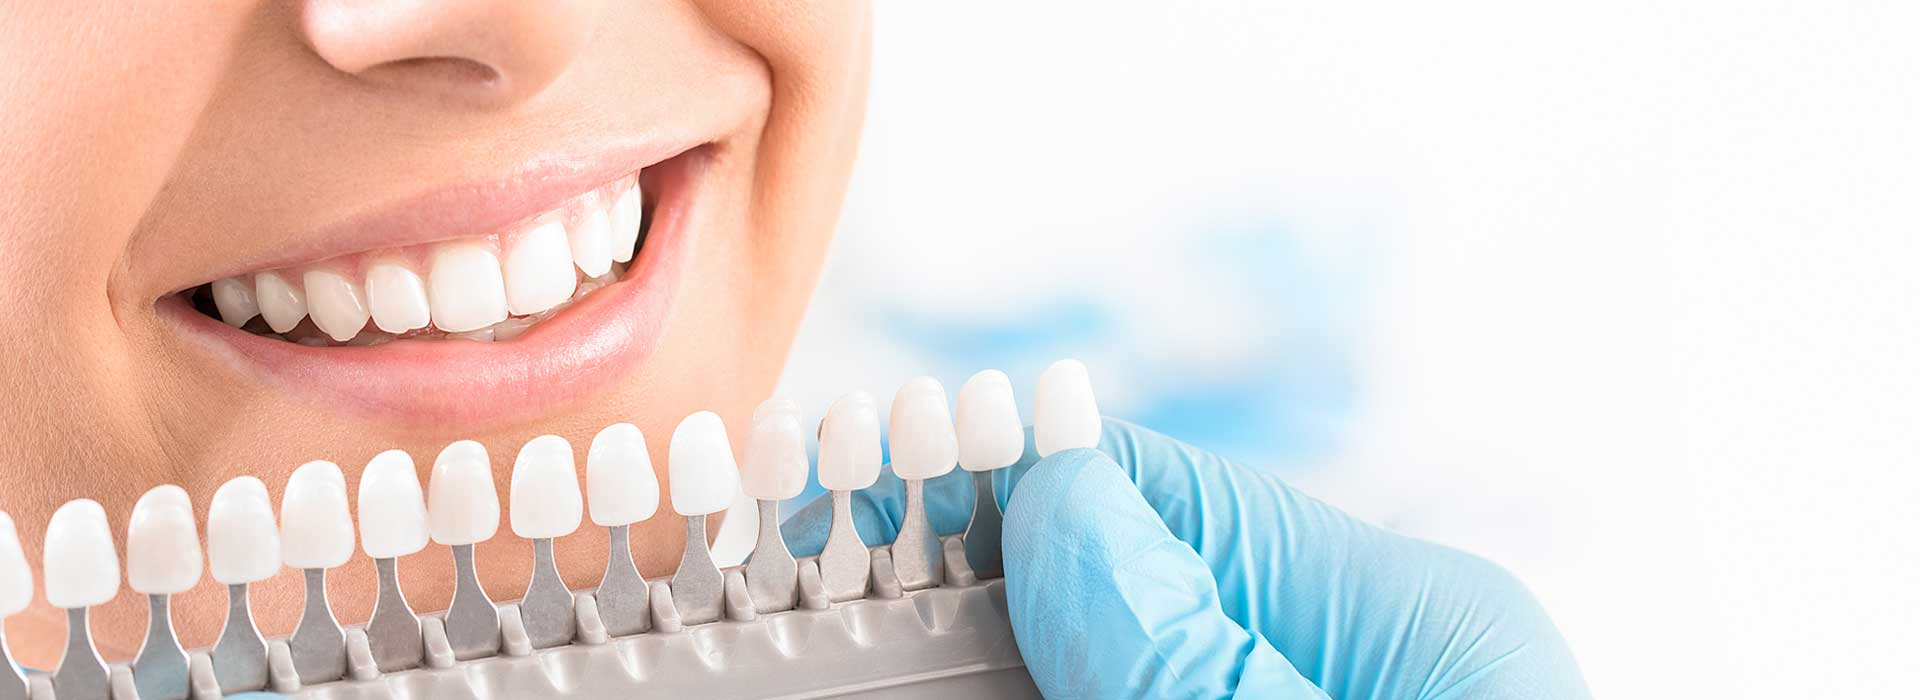 Implant Dentistry Guerrino Dentistry